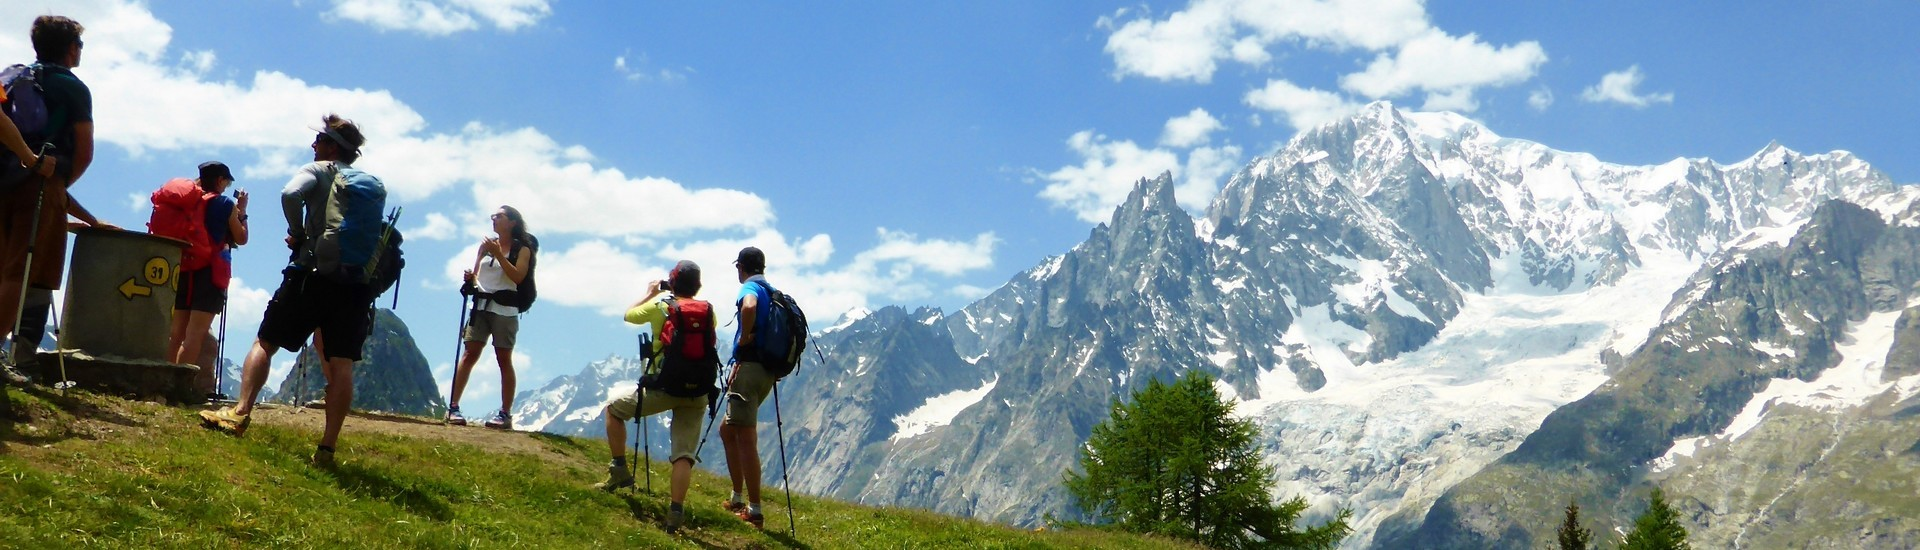 67c315c43 The classic Tour of Mont-Blanc in 7 days of hiking - Altitude MontBlanc